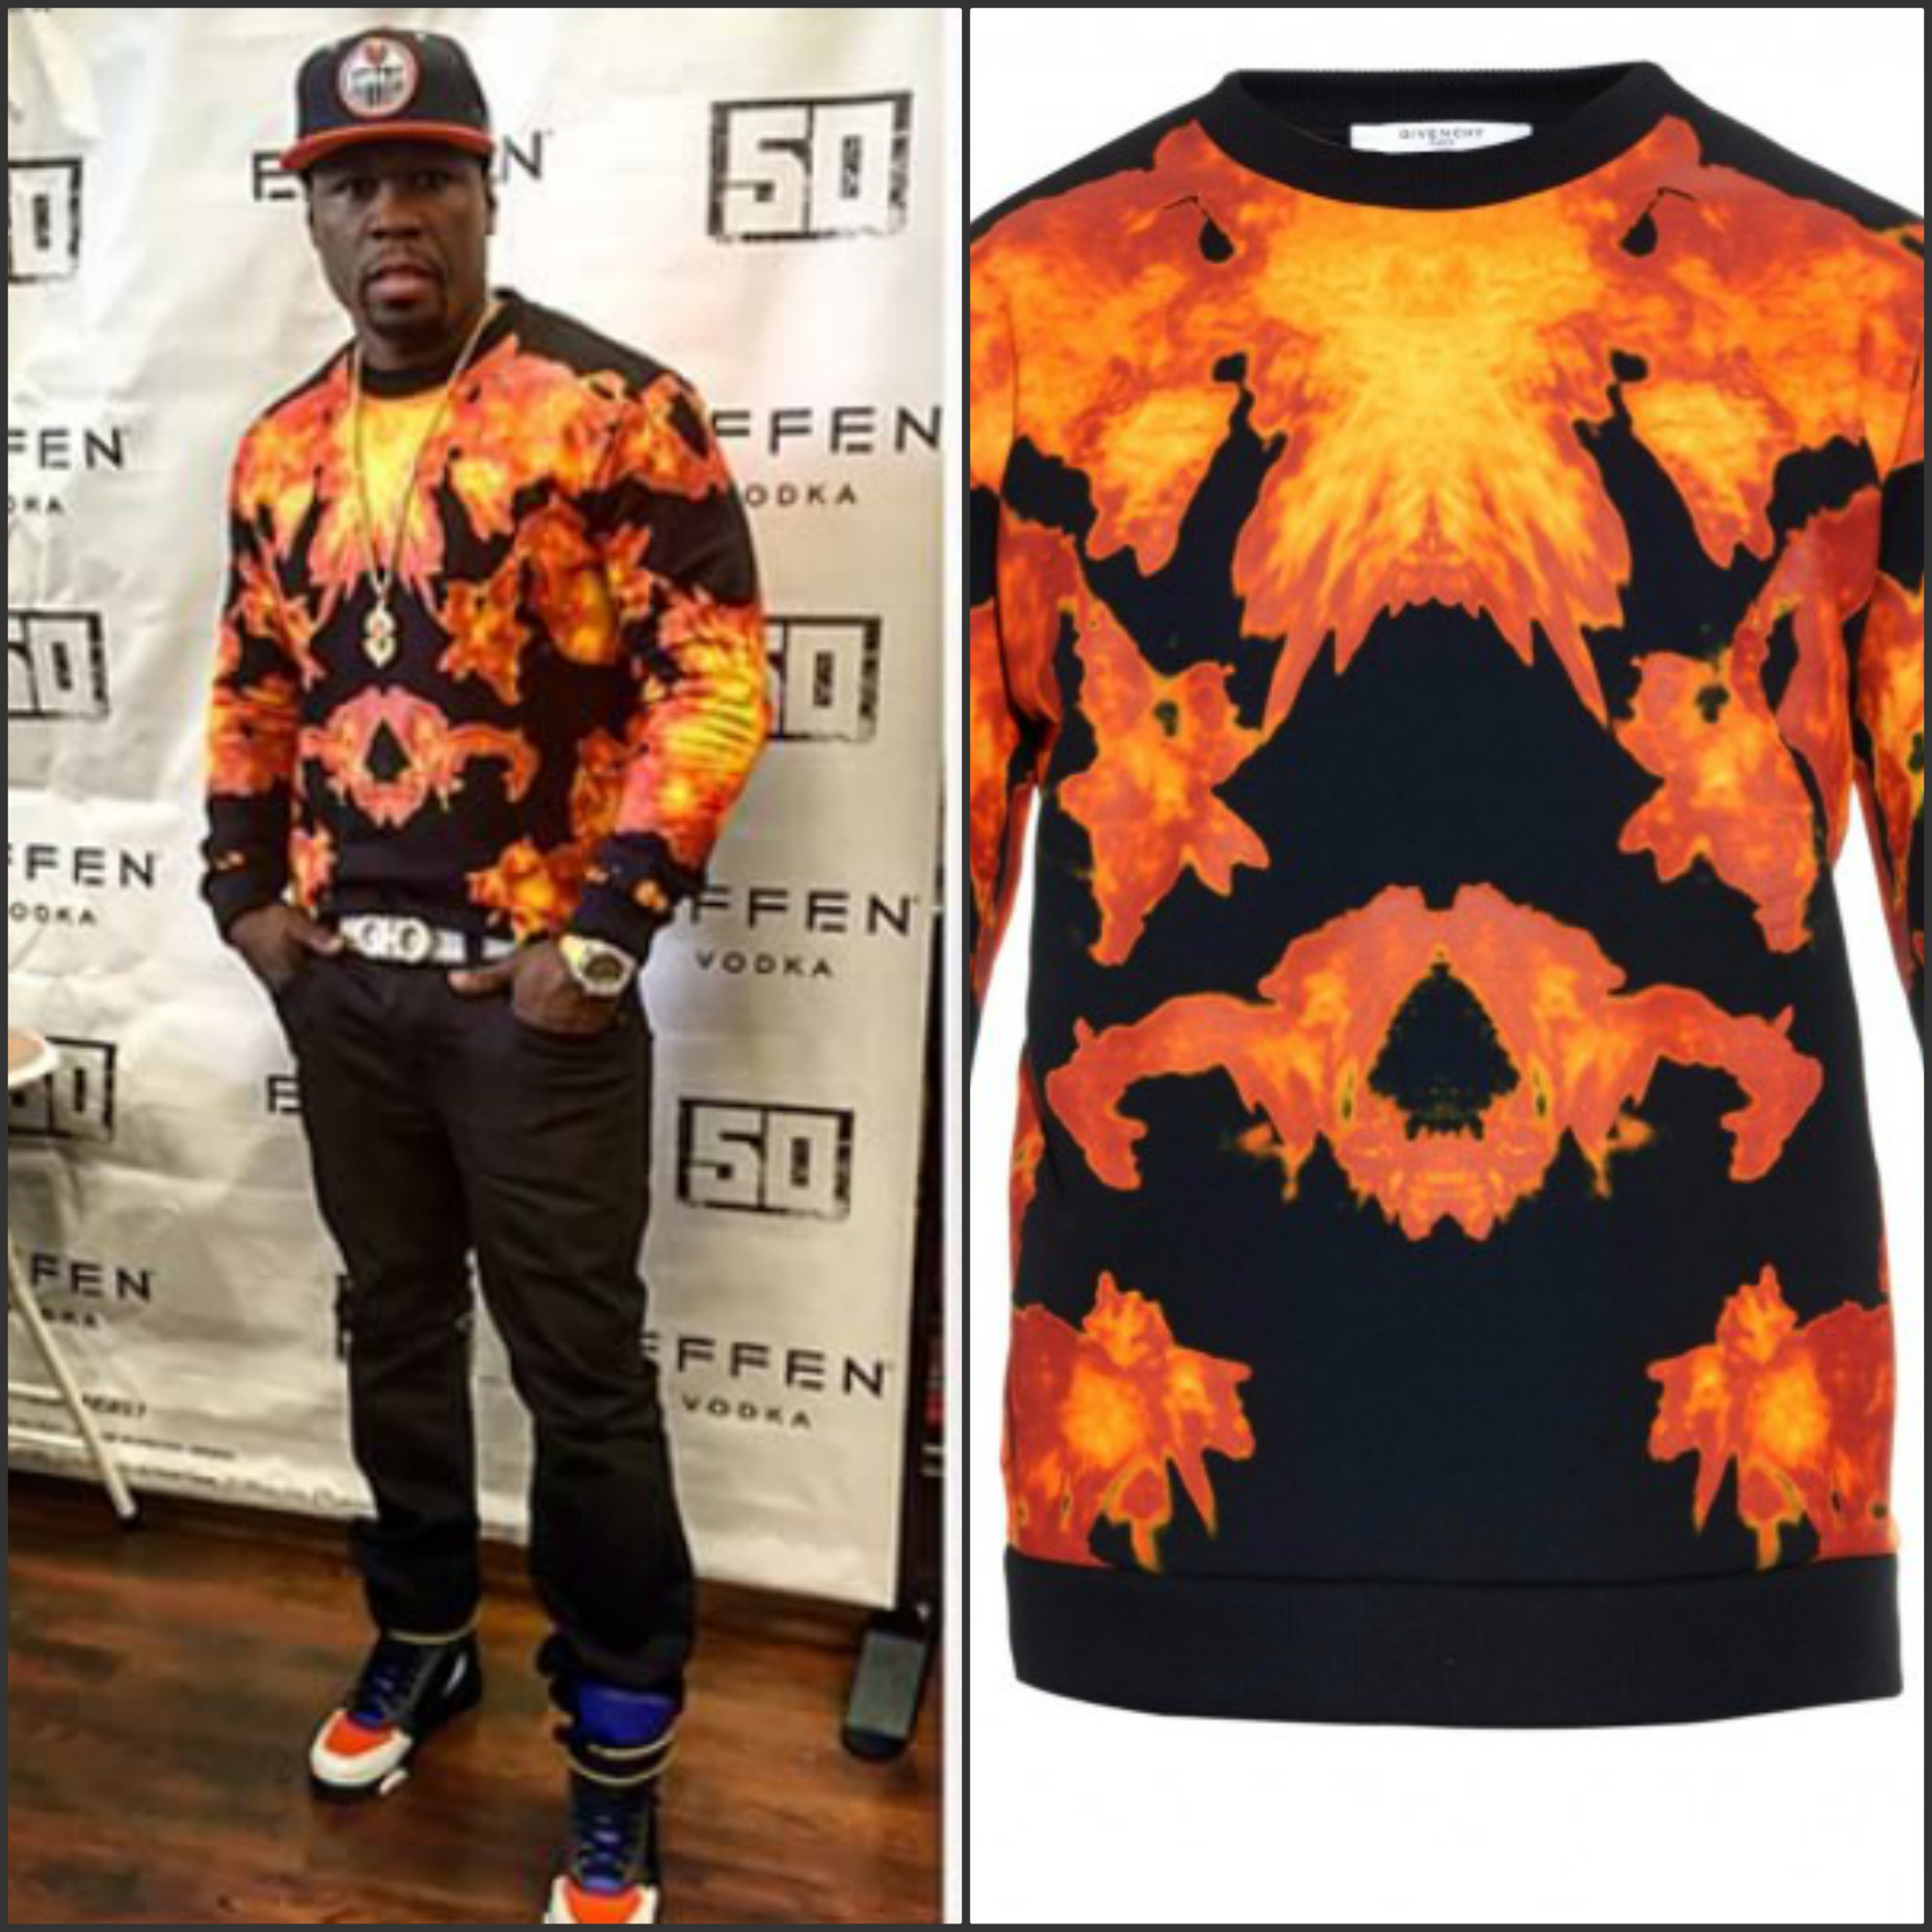 fifty-cents-givenchy-flame-print-cuban-fit-cotton-sweatshirt-tyson-leather-high-top-sneakers